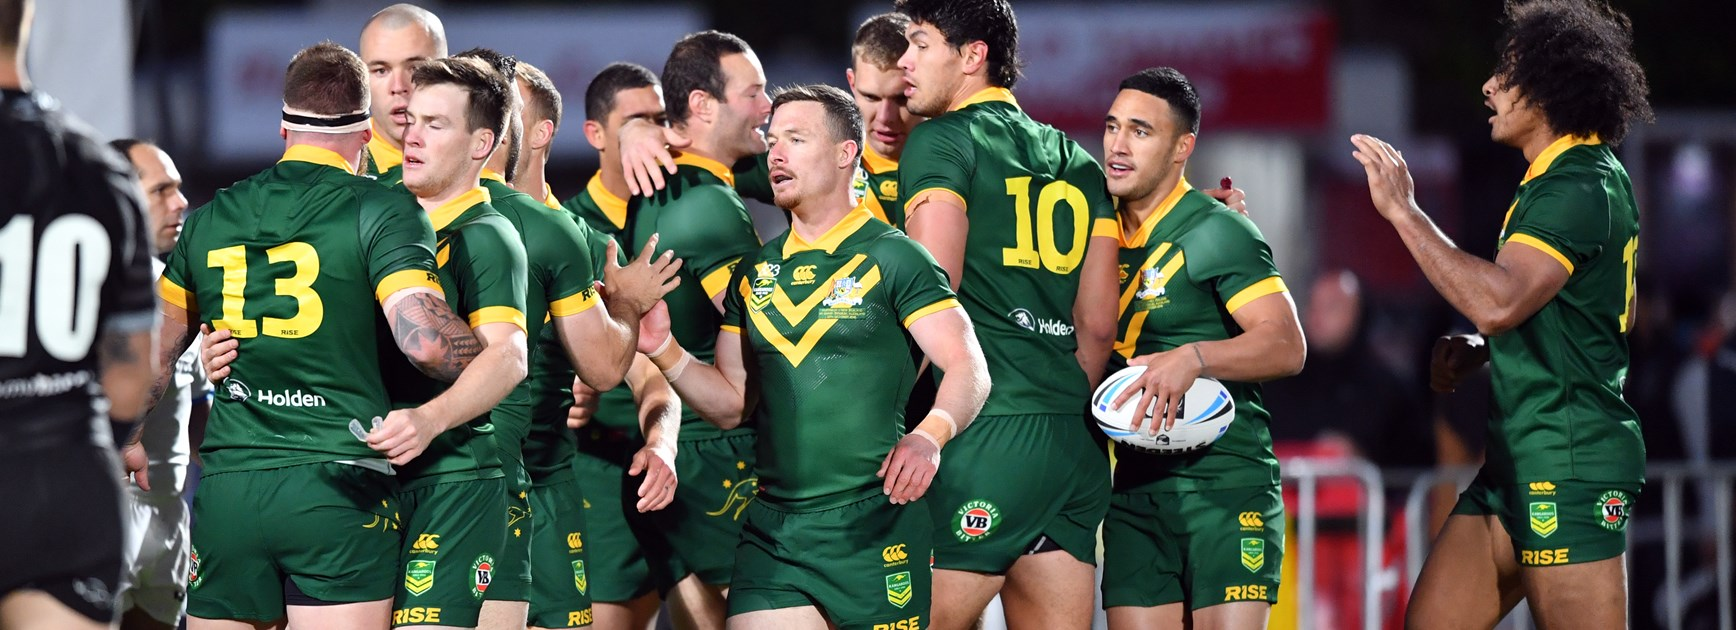 The Kangaroos celebrate a try.